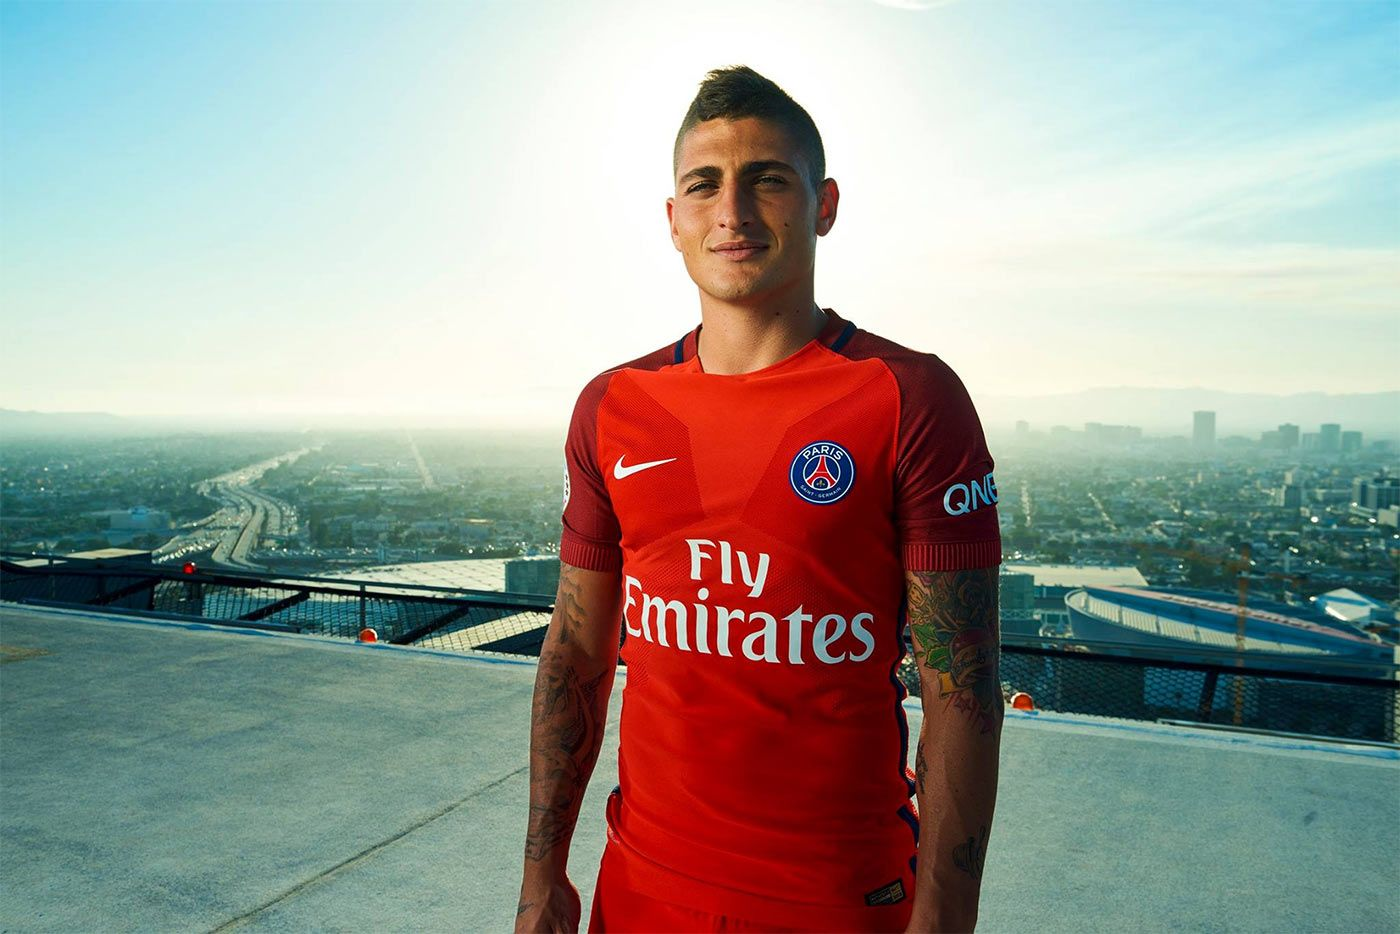 Verratti con la divisa away del Paris Saint-Germain 2016-17